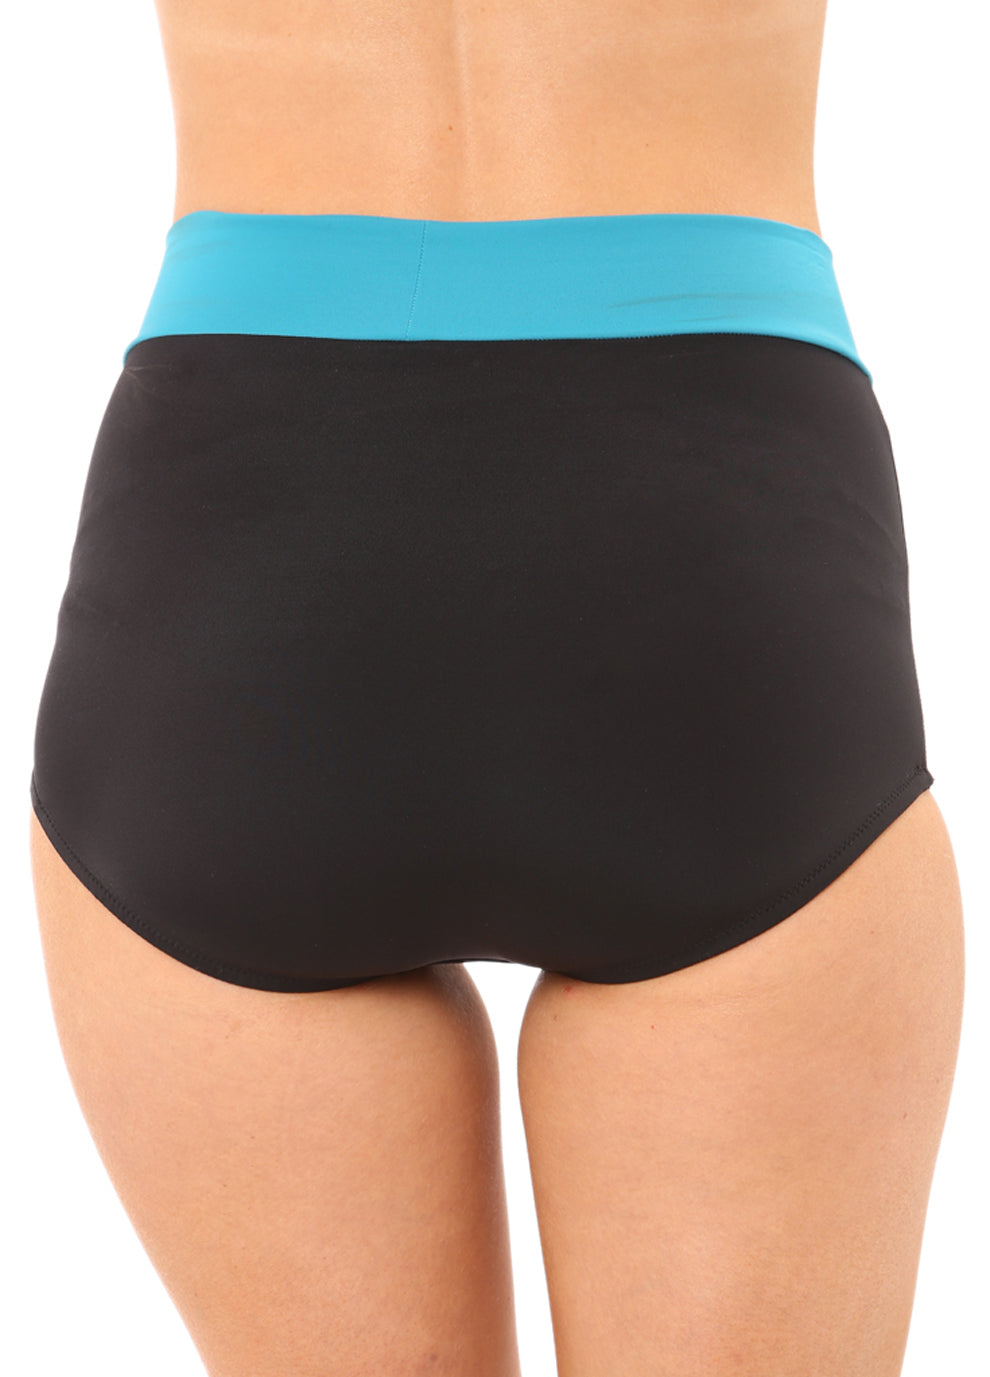 Alexa BRIEF Blackblue